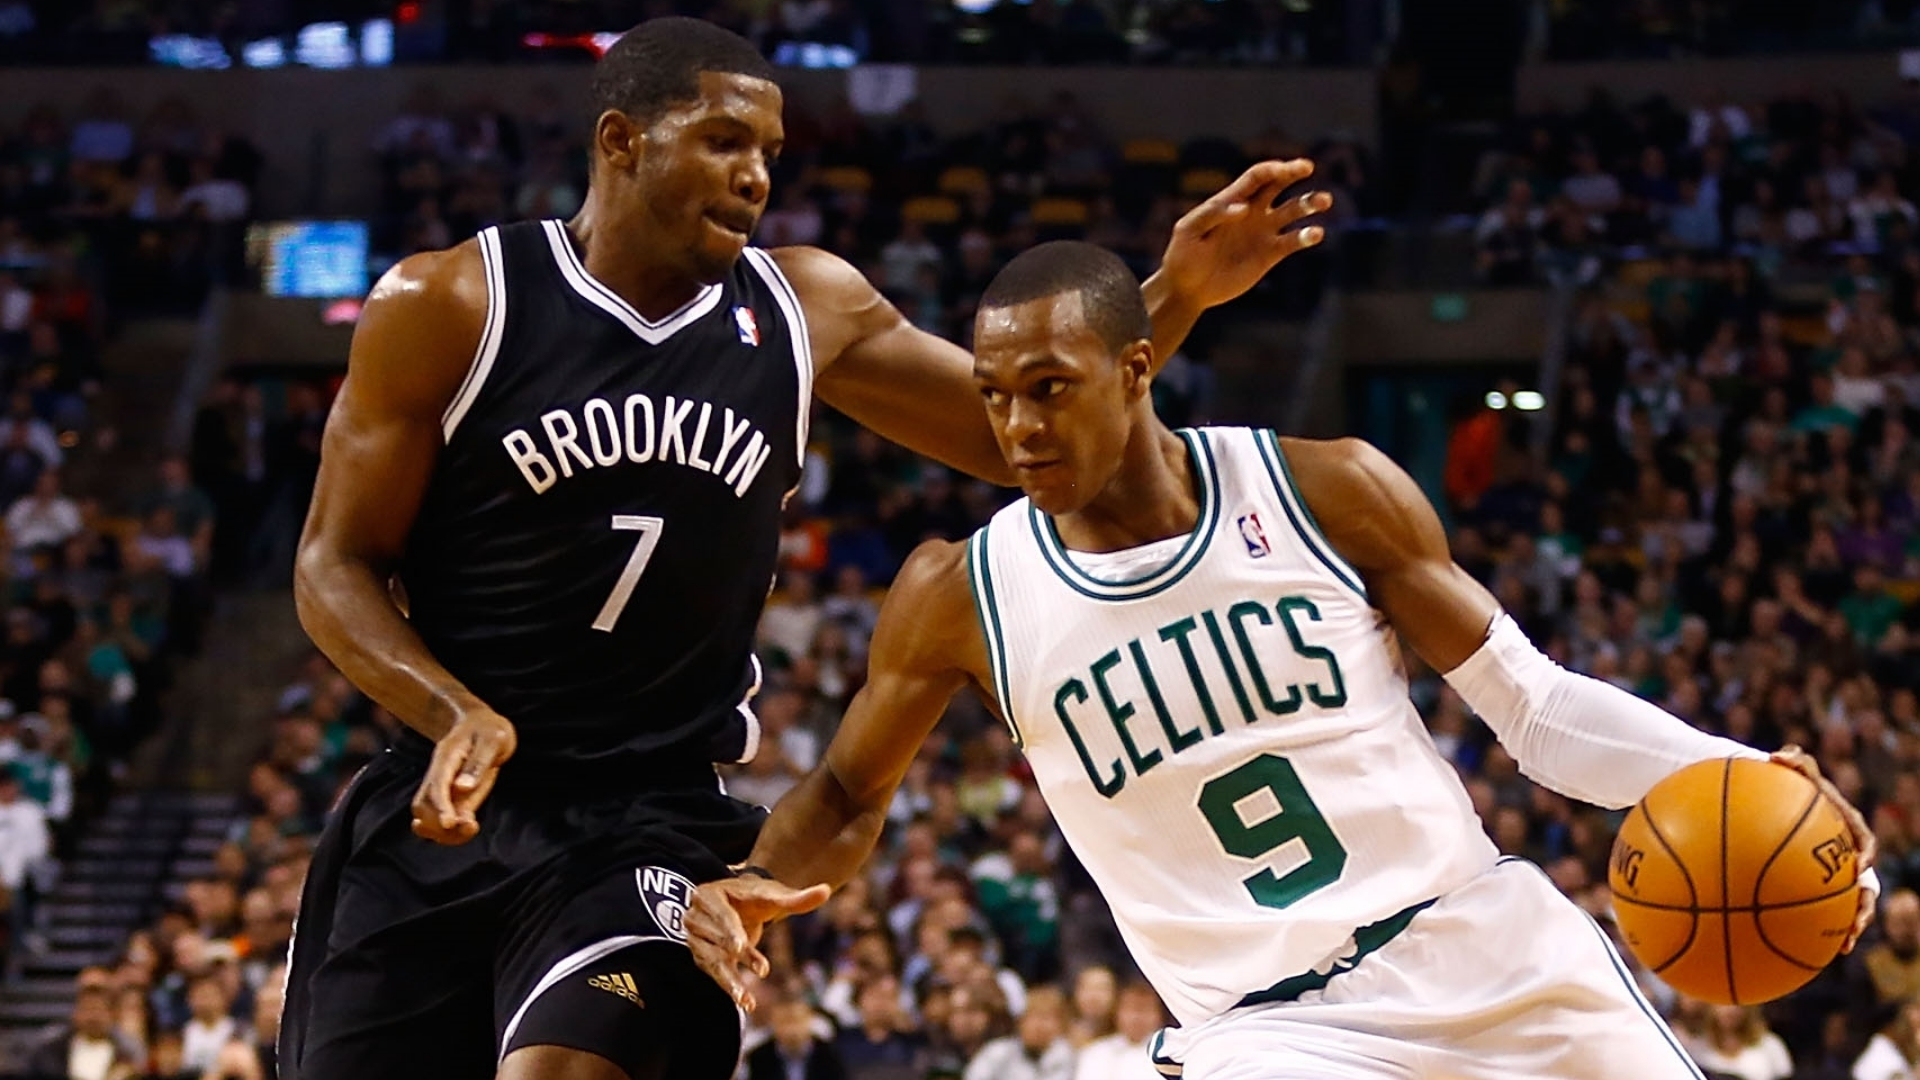 This Date in NBA History (Nov. 29): Rajon Rondo's record-setting double-digit assists streak comes to an end